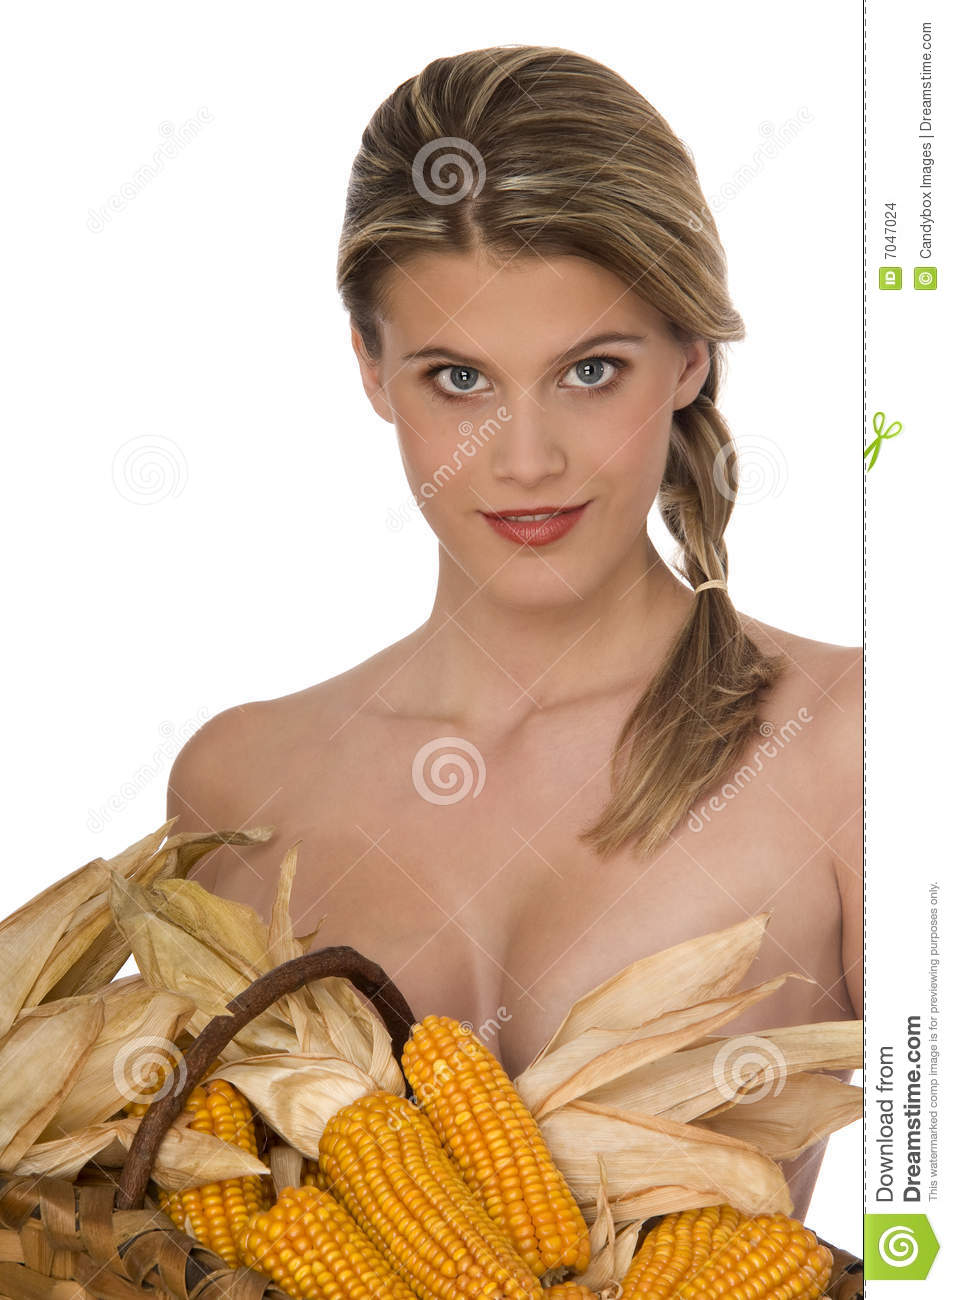 Healthy Looking Woman Hold A Basket Full Of Corn Stock